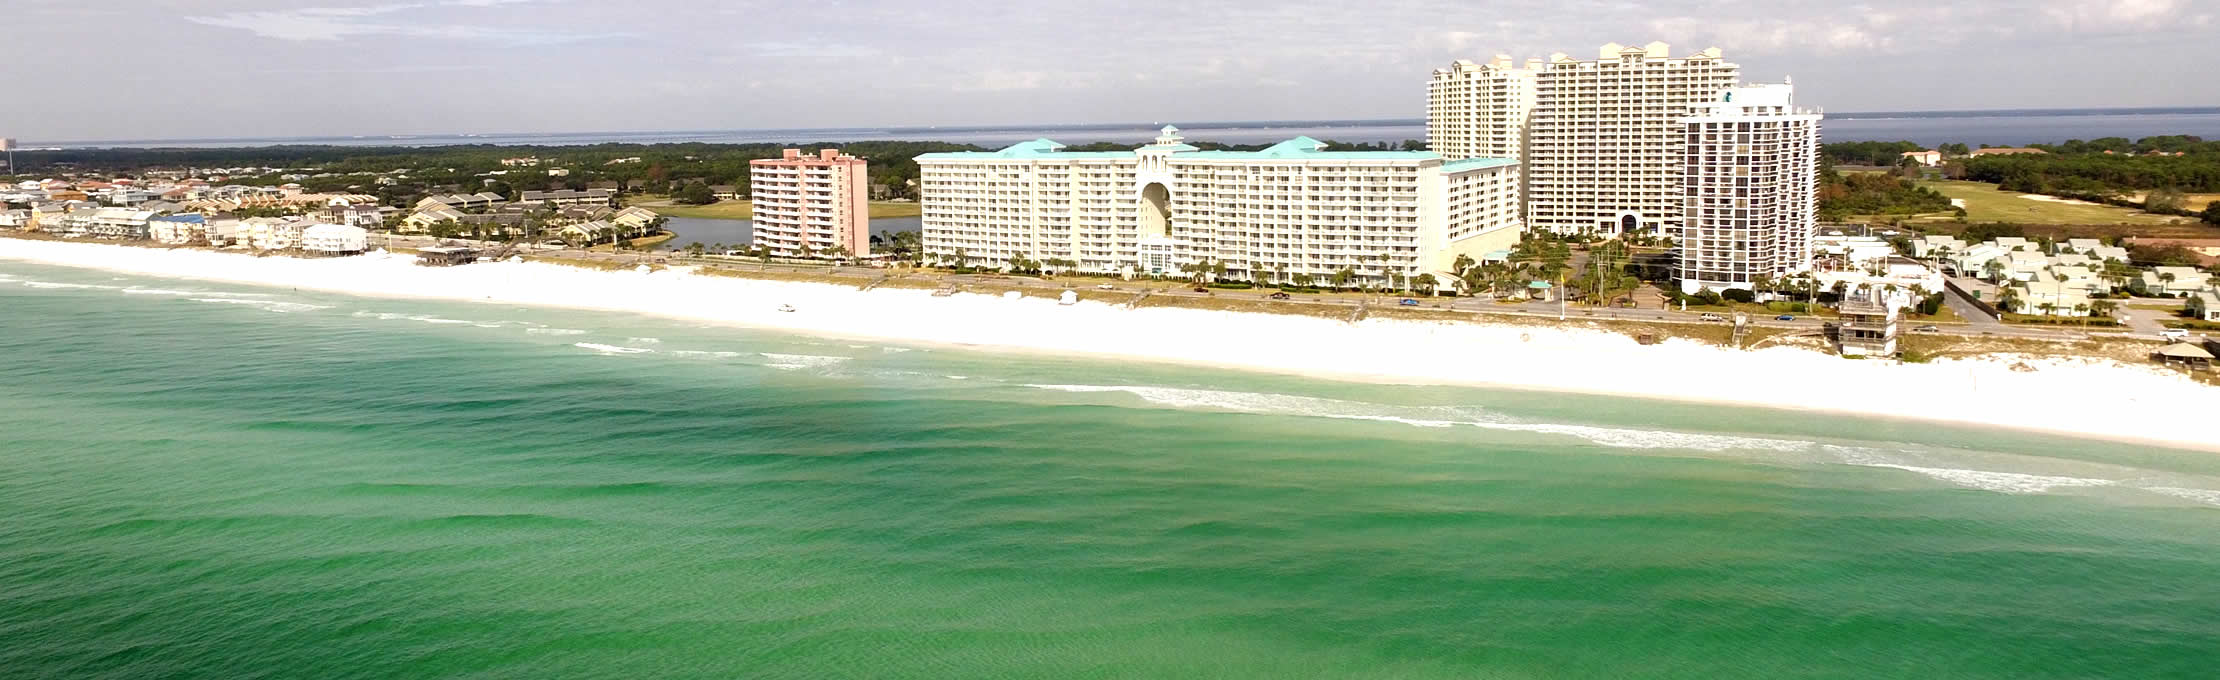 Destin Condo Als Resort